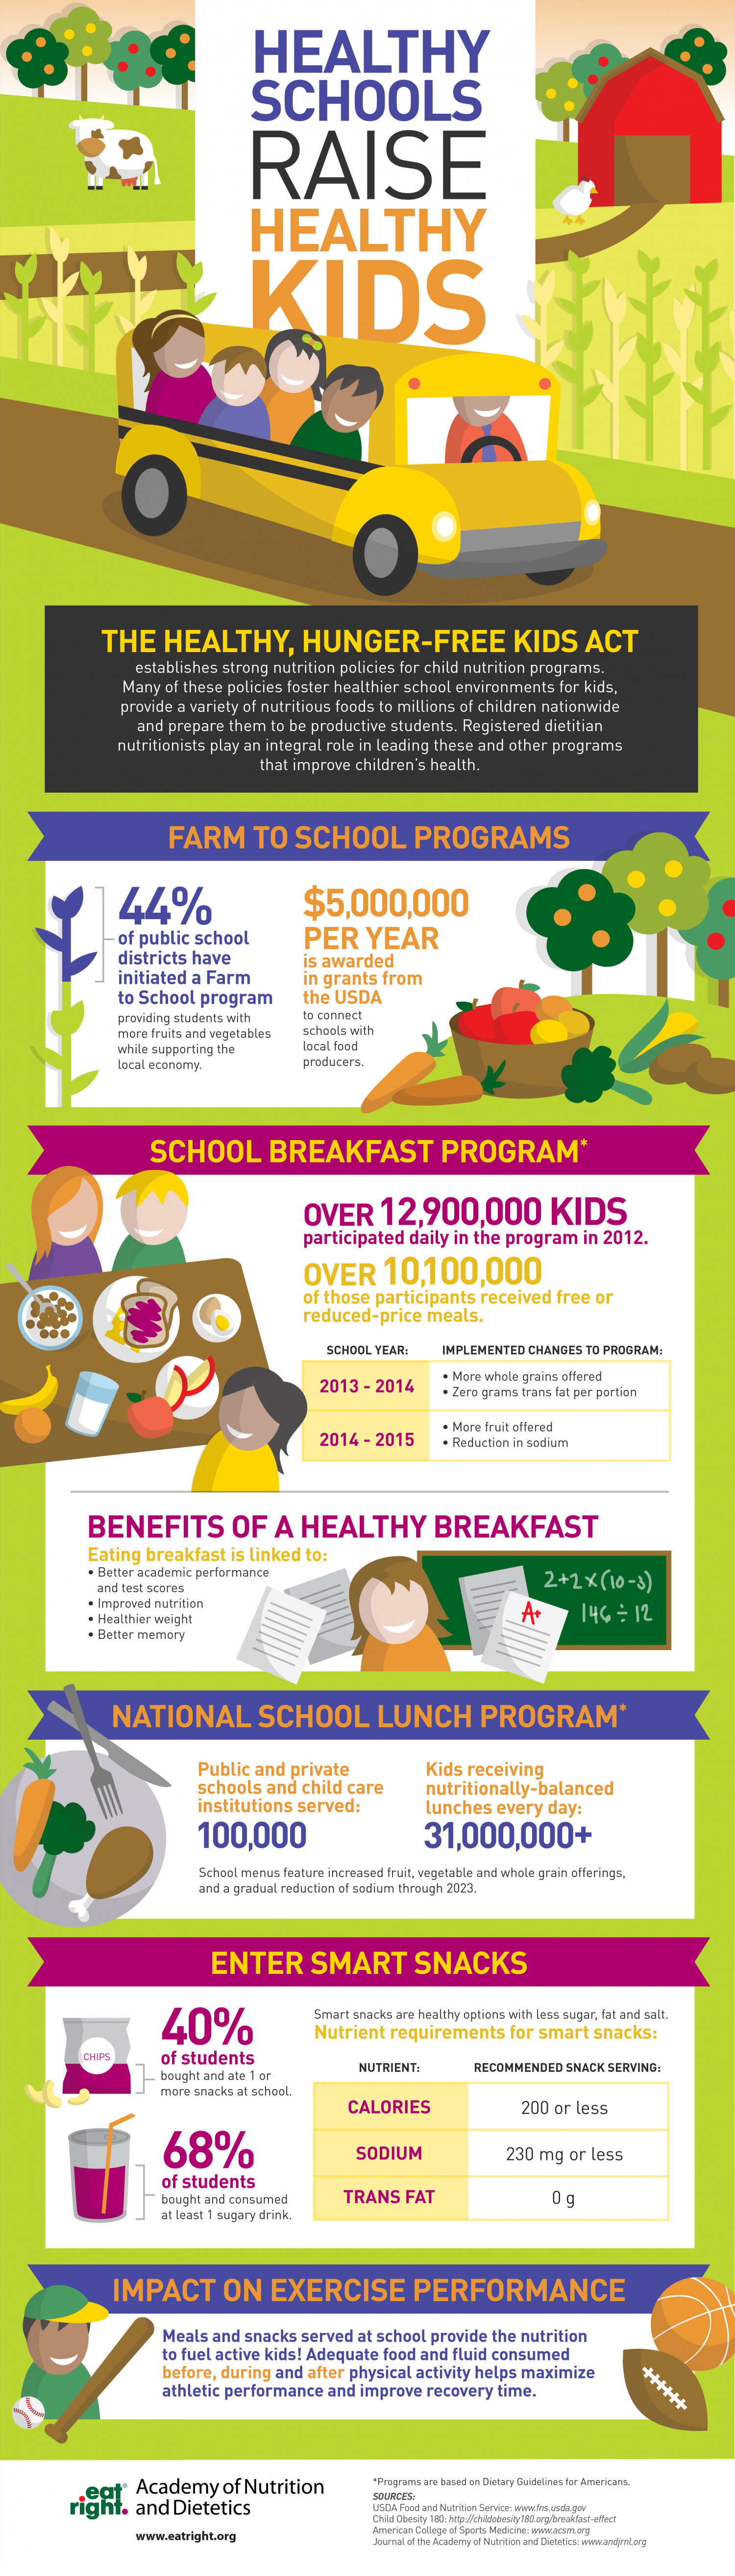 Healthy Schools Raise Healthy Kids Infographic